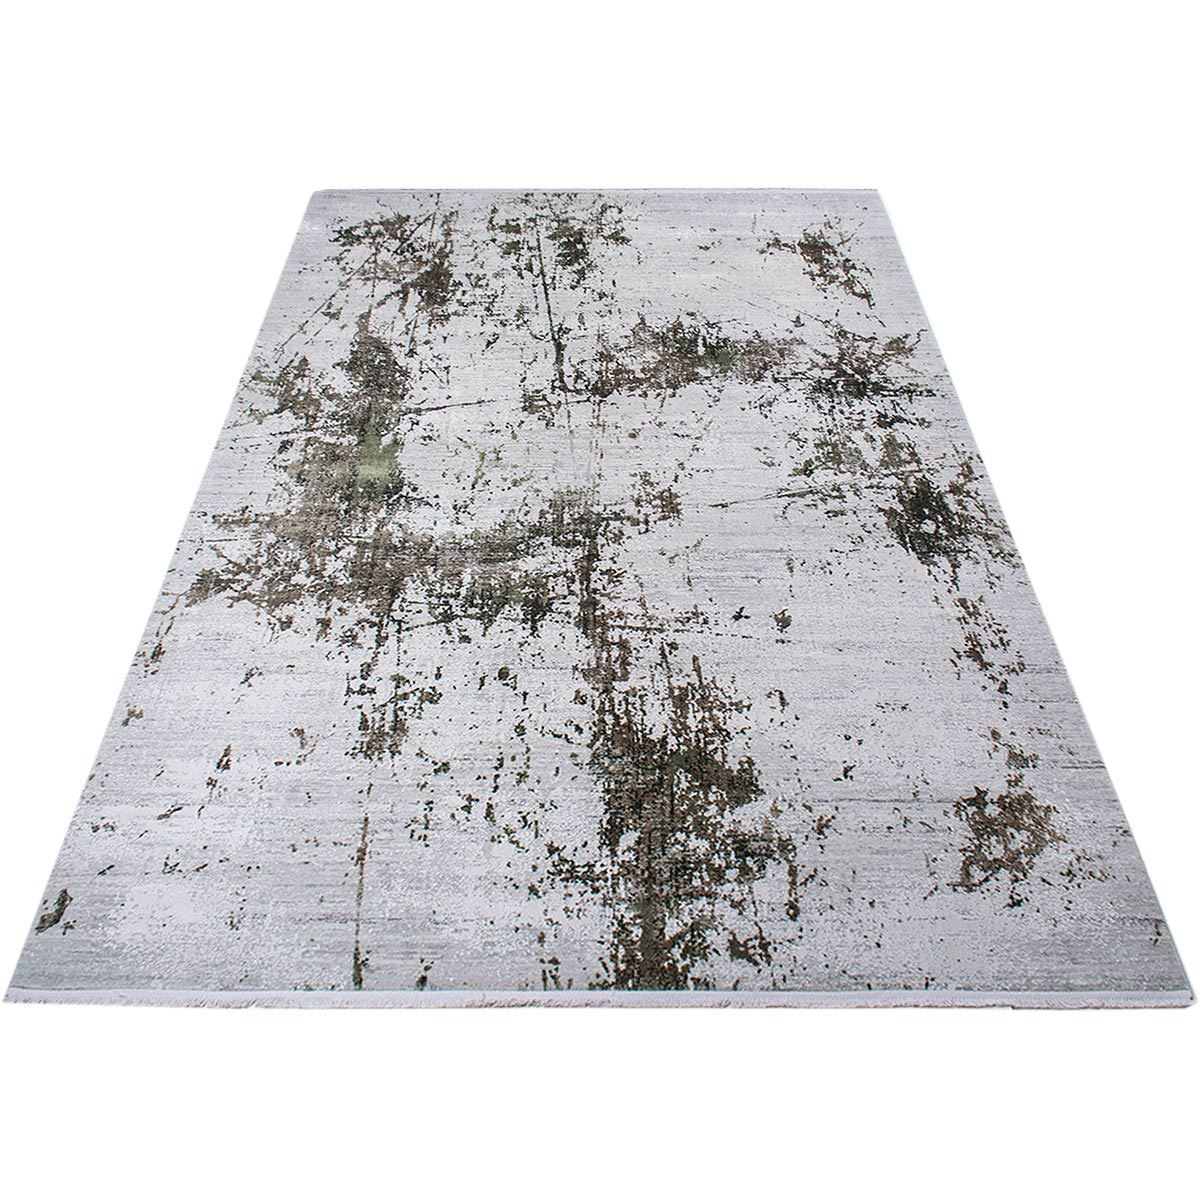 Jaipur Rug 01 Grey/Green 6